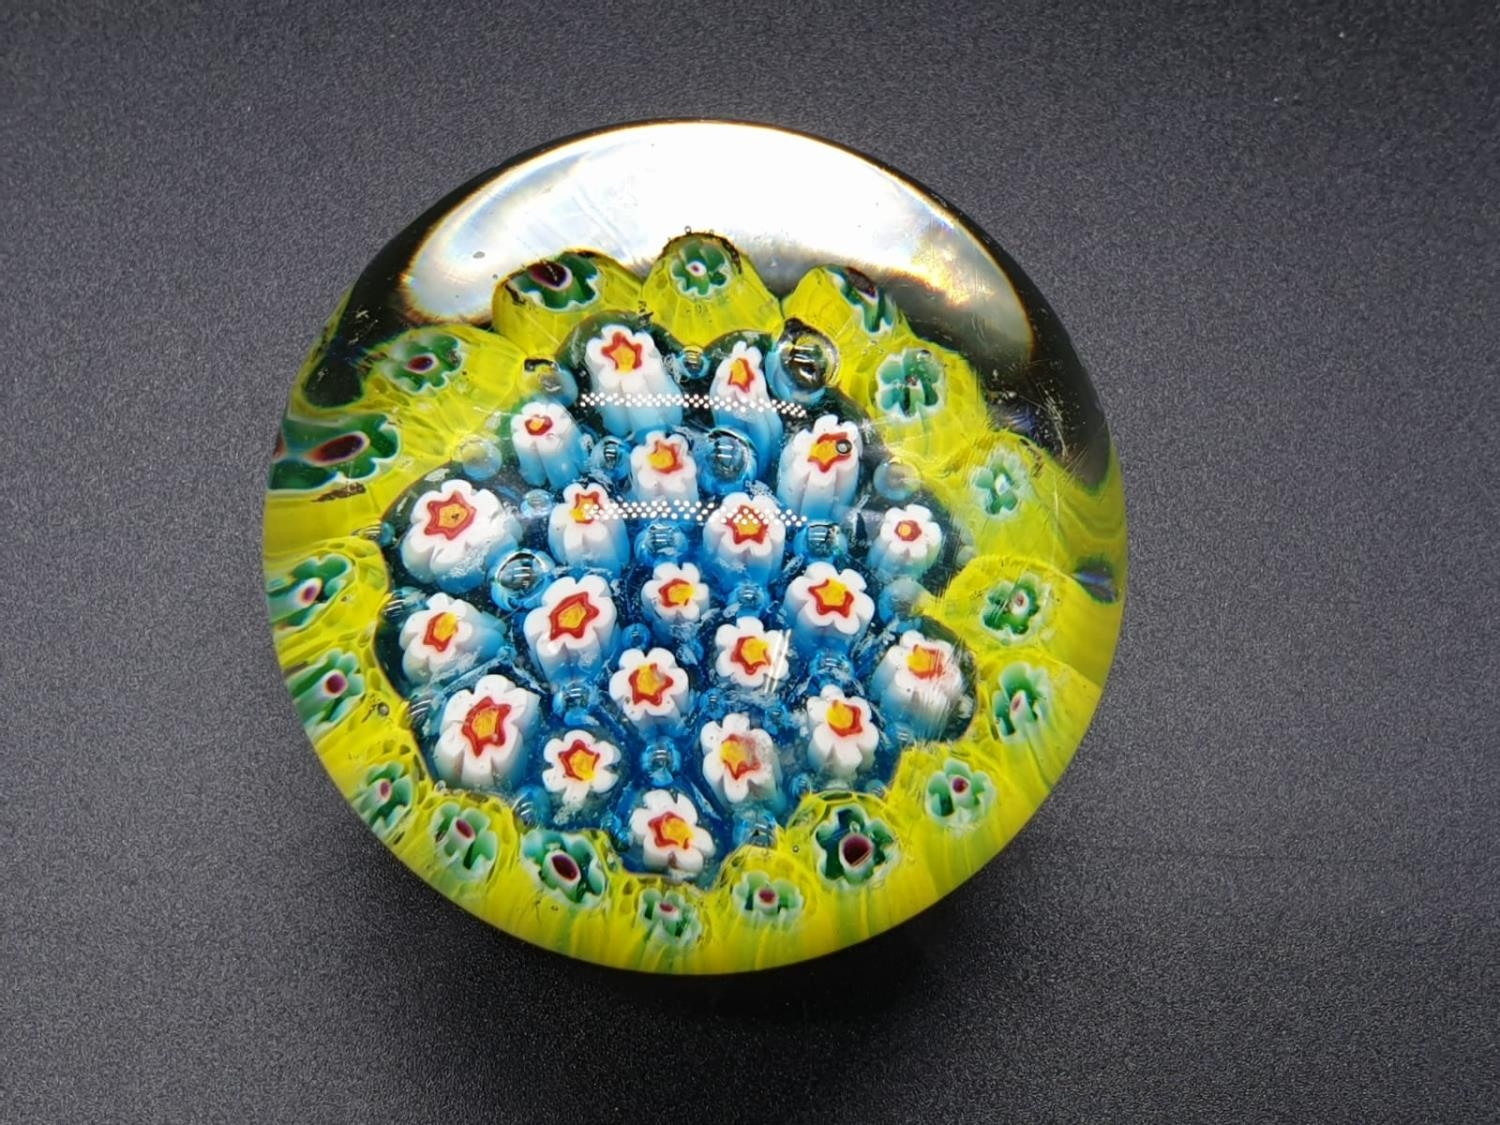 Collection of 6 paperweights, 4 are Millefiori styled, the other two are Caithness paperweights, the - Image 11 of 13